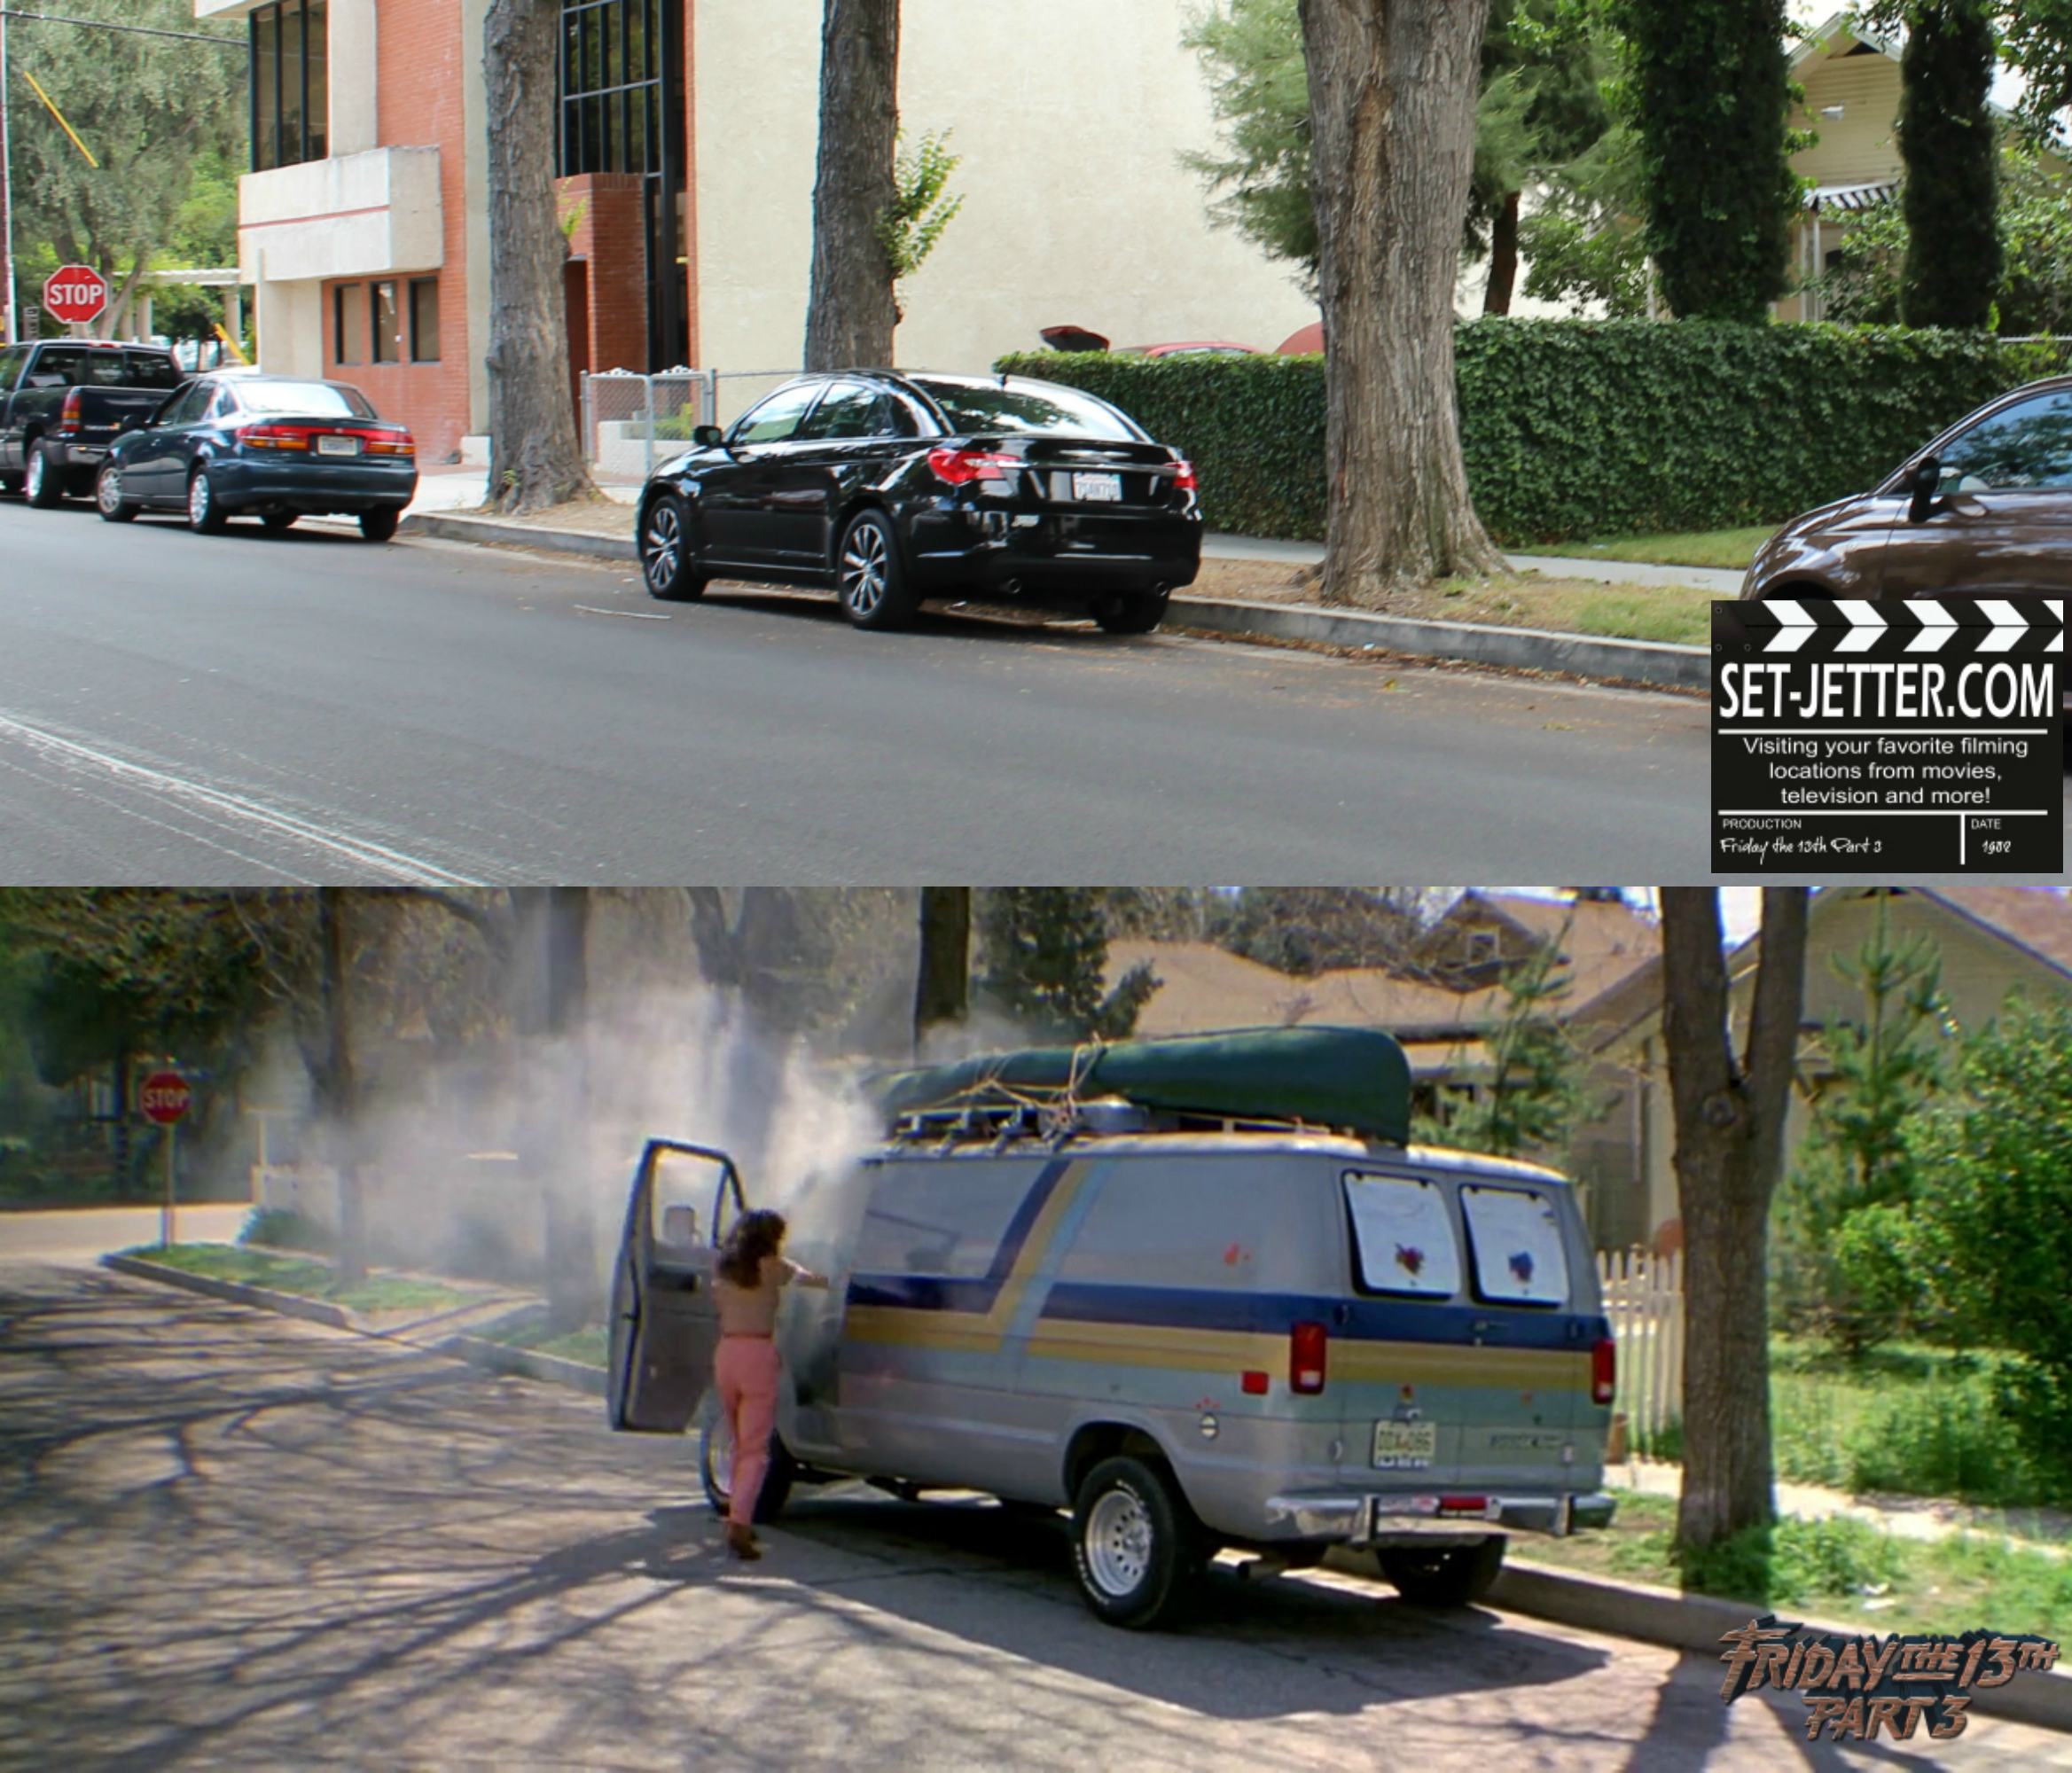 Friday the 13th Part 3 comparison 37.jpg